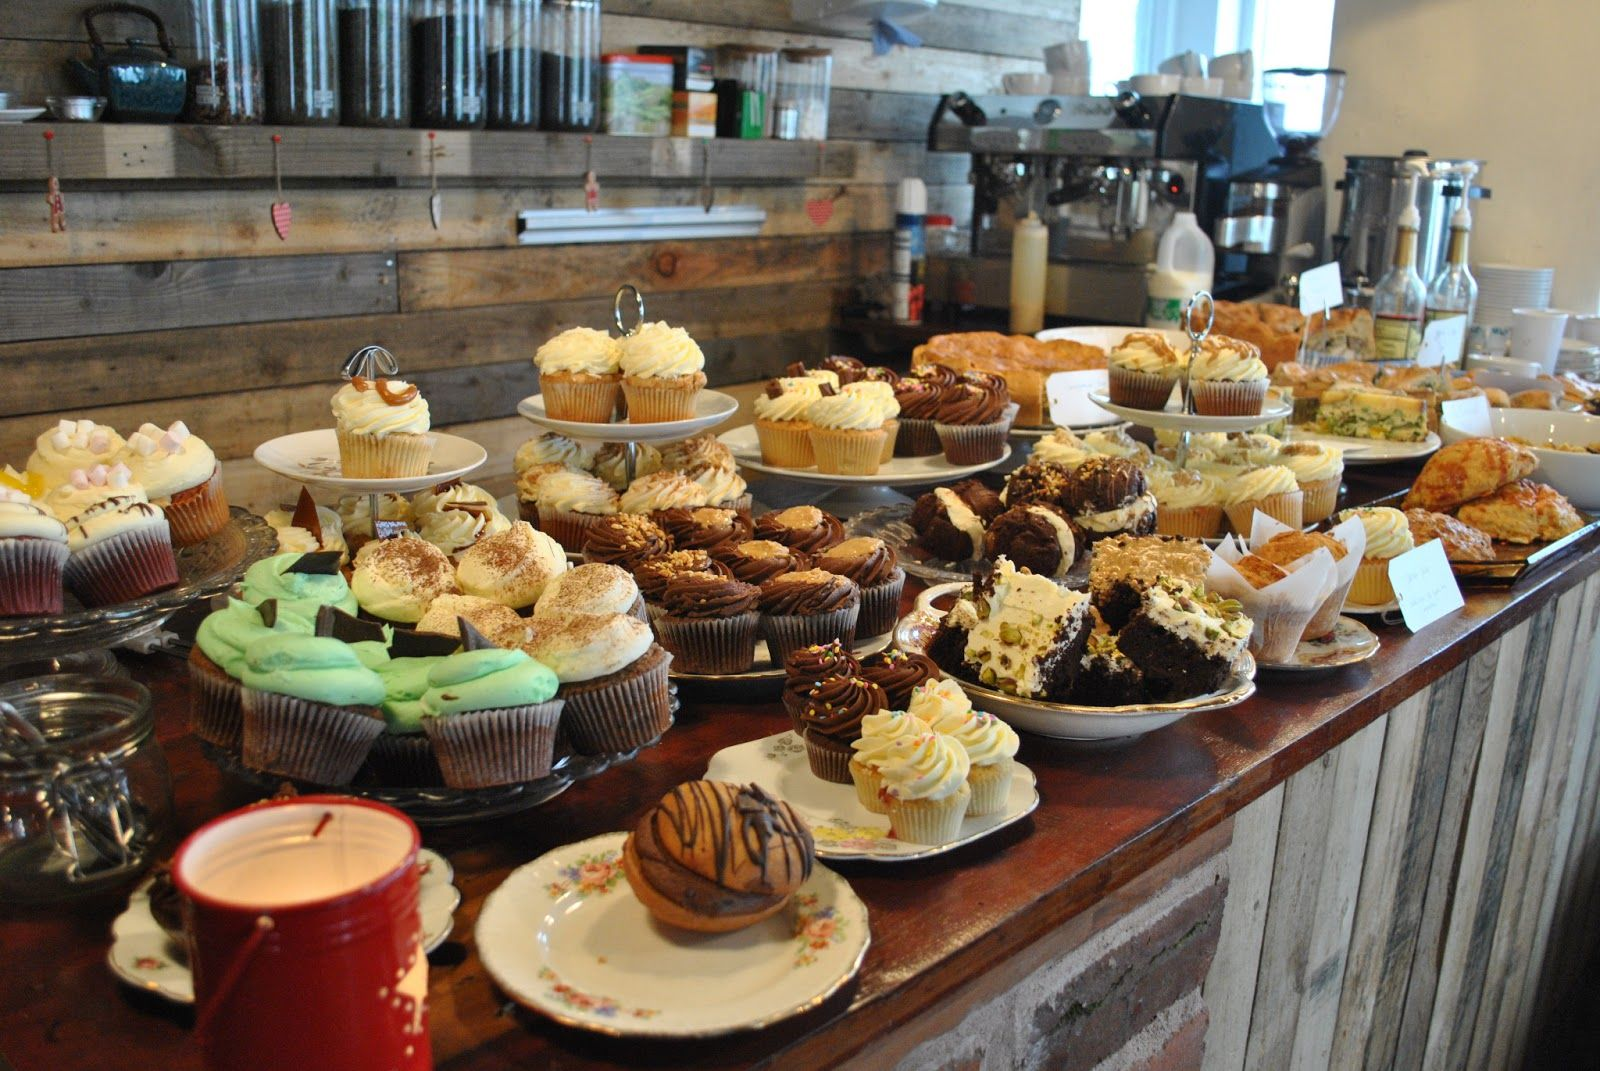 Cake display cake shop ideas that inspire me pinterest for Coffee shop display ideas